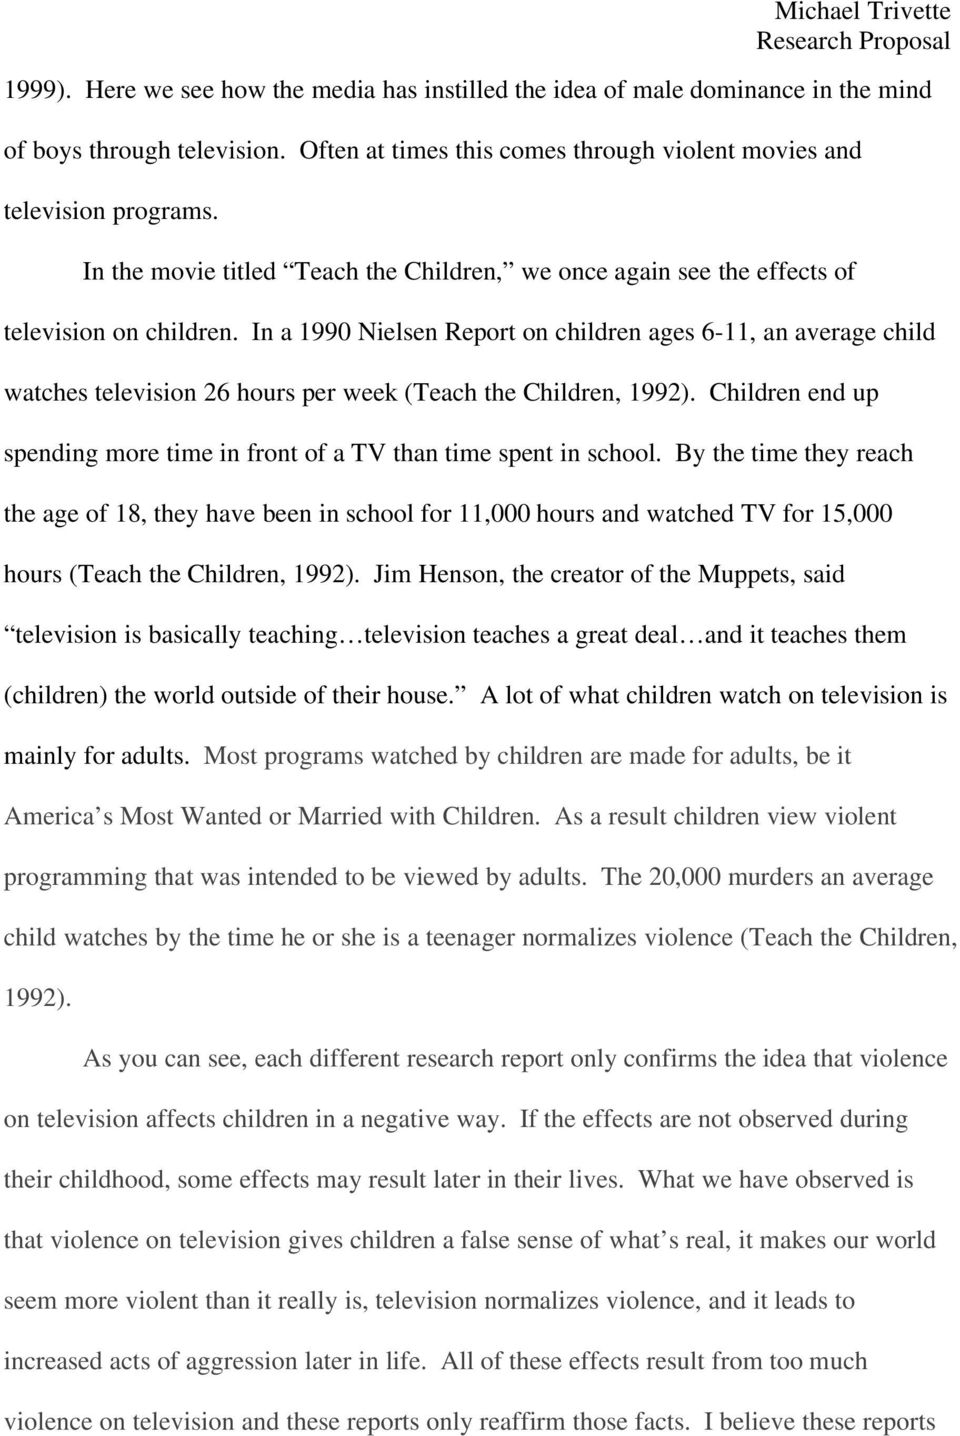 In a 1990 Nielsen Report on children ages 6-11, an average child watches television 26 hours per week (Teach the Children, 1992).